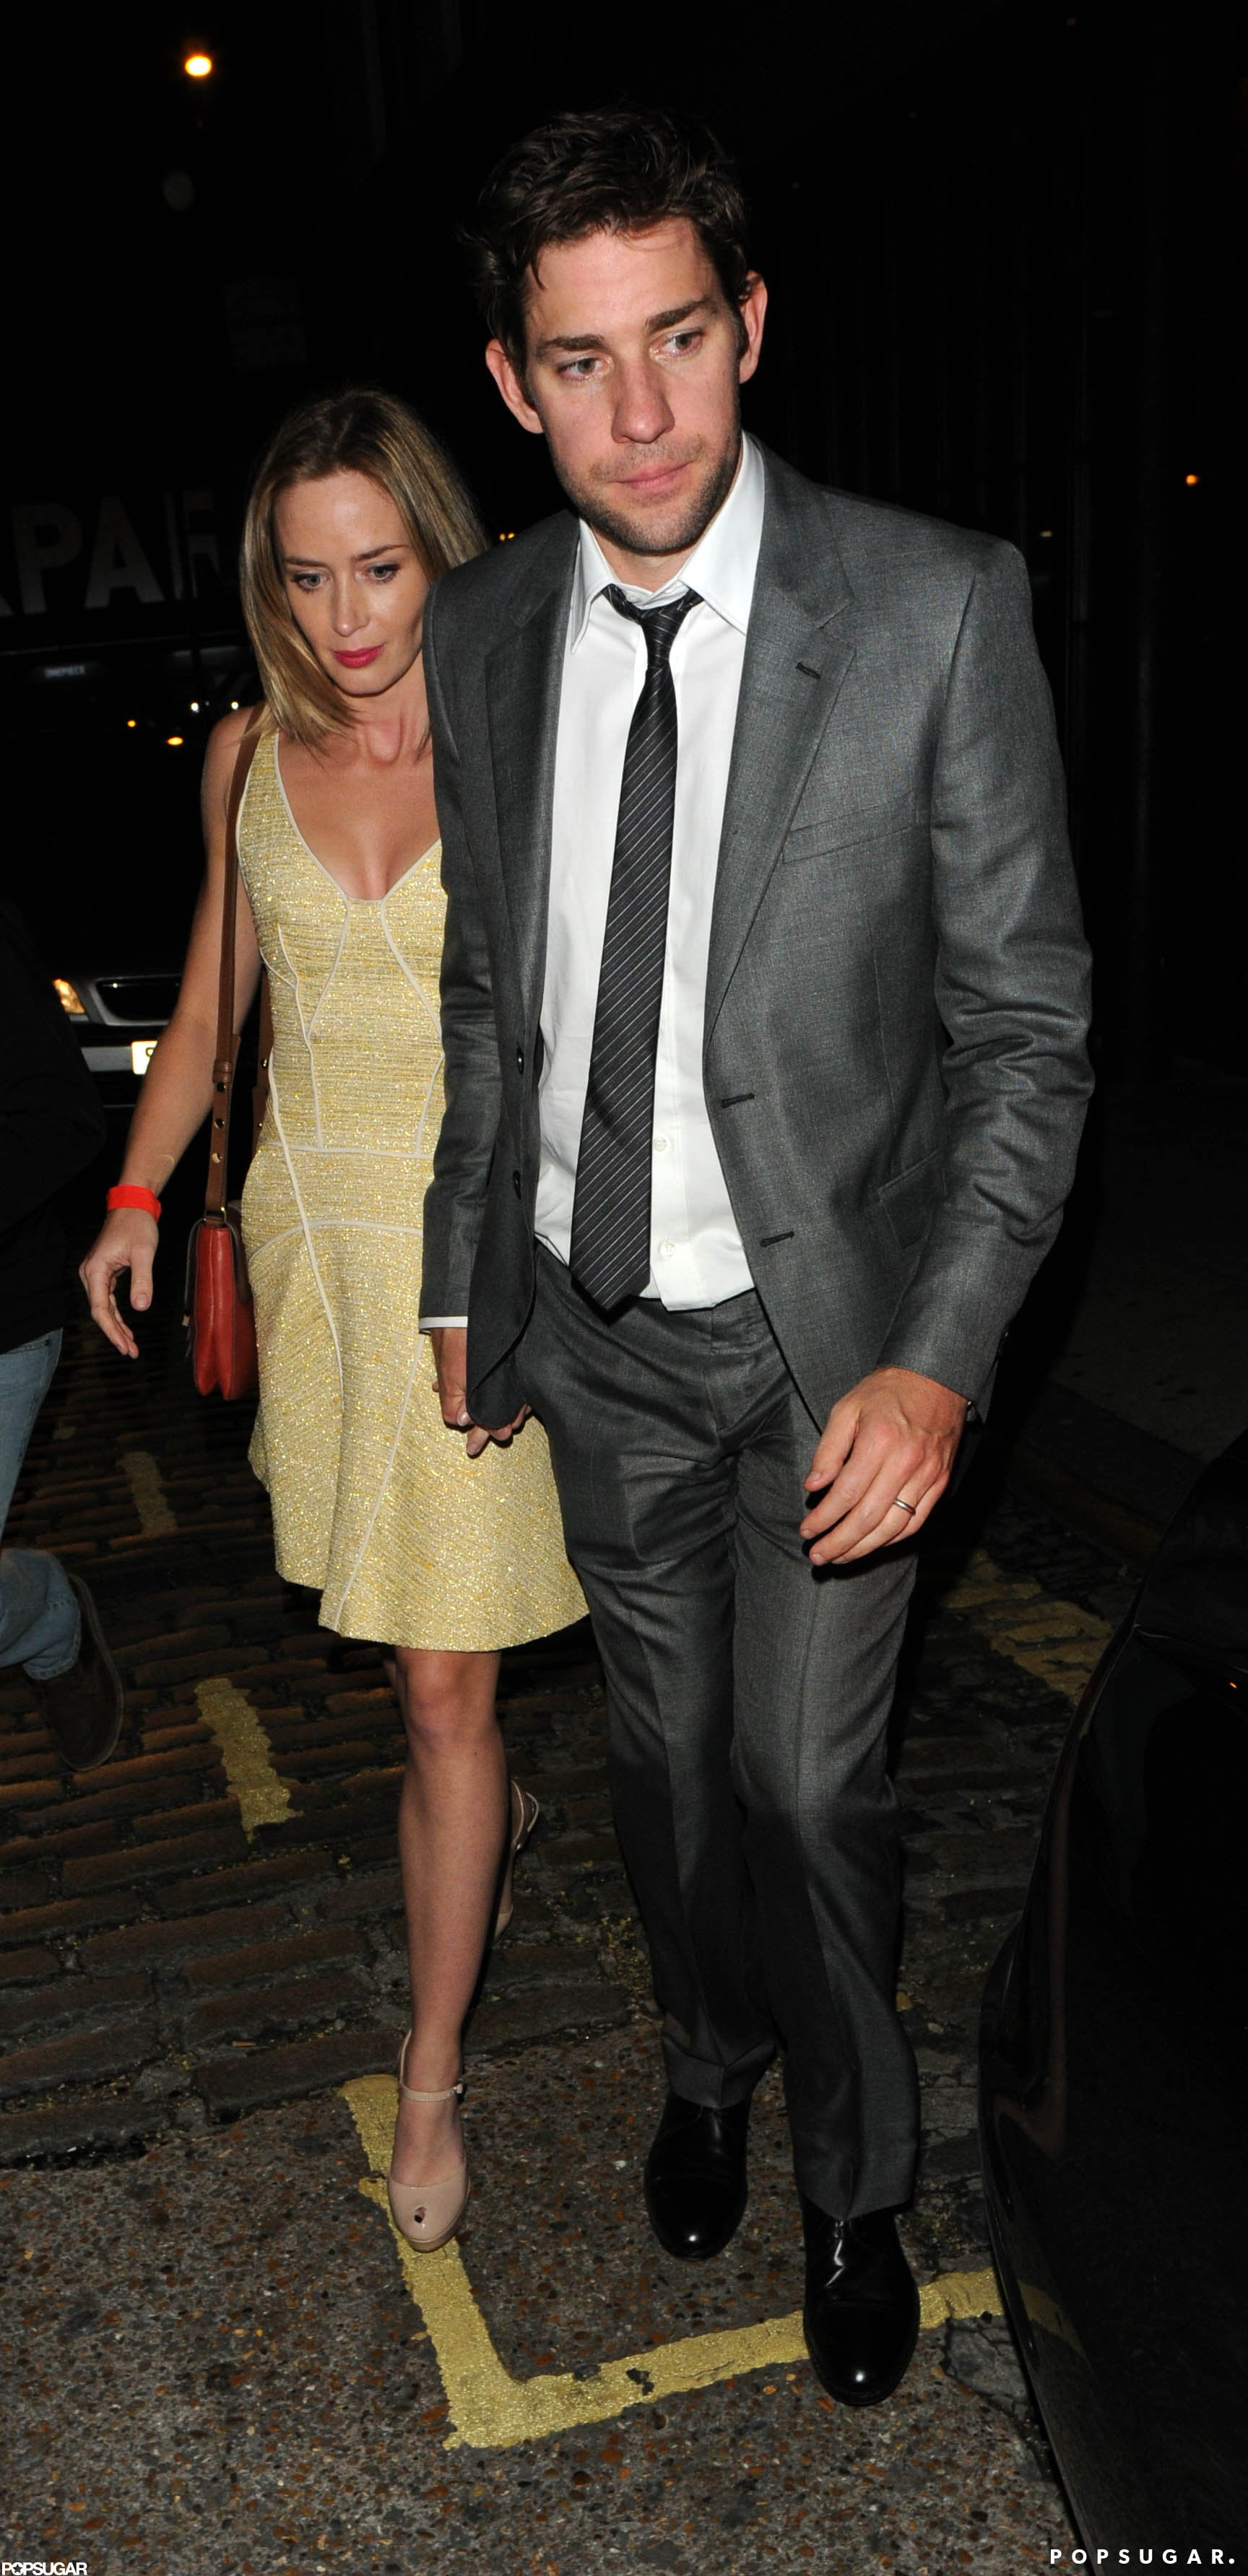 Emily Blunt and John Krasinski arrived hand in hand to Stanley Tucci and Felicity Blunt's wedding in London in October 2012.